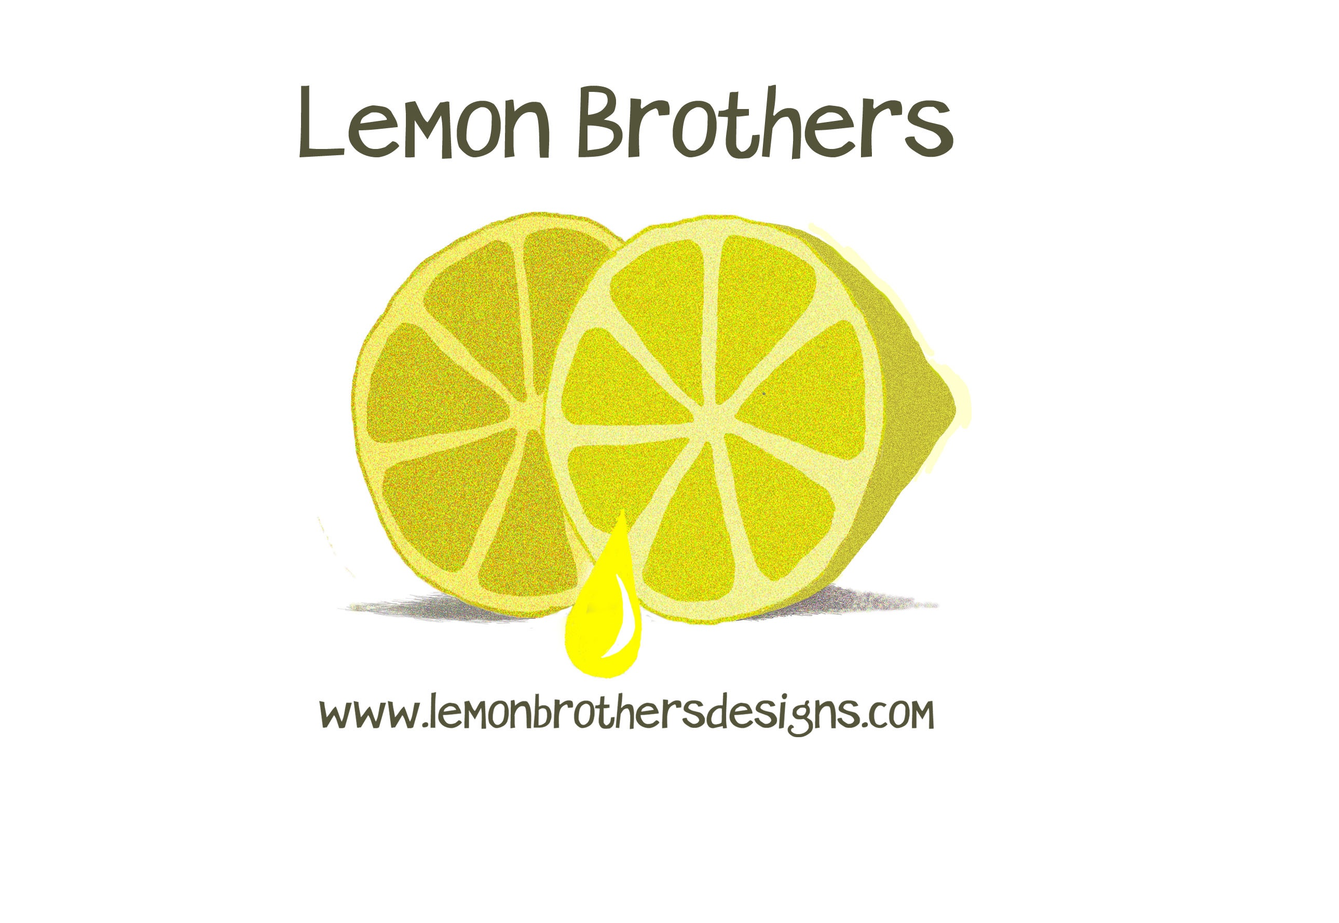 Lemon Brothers Designs